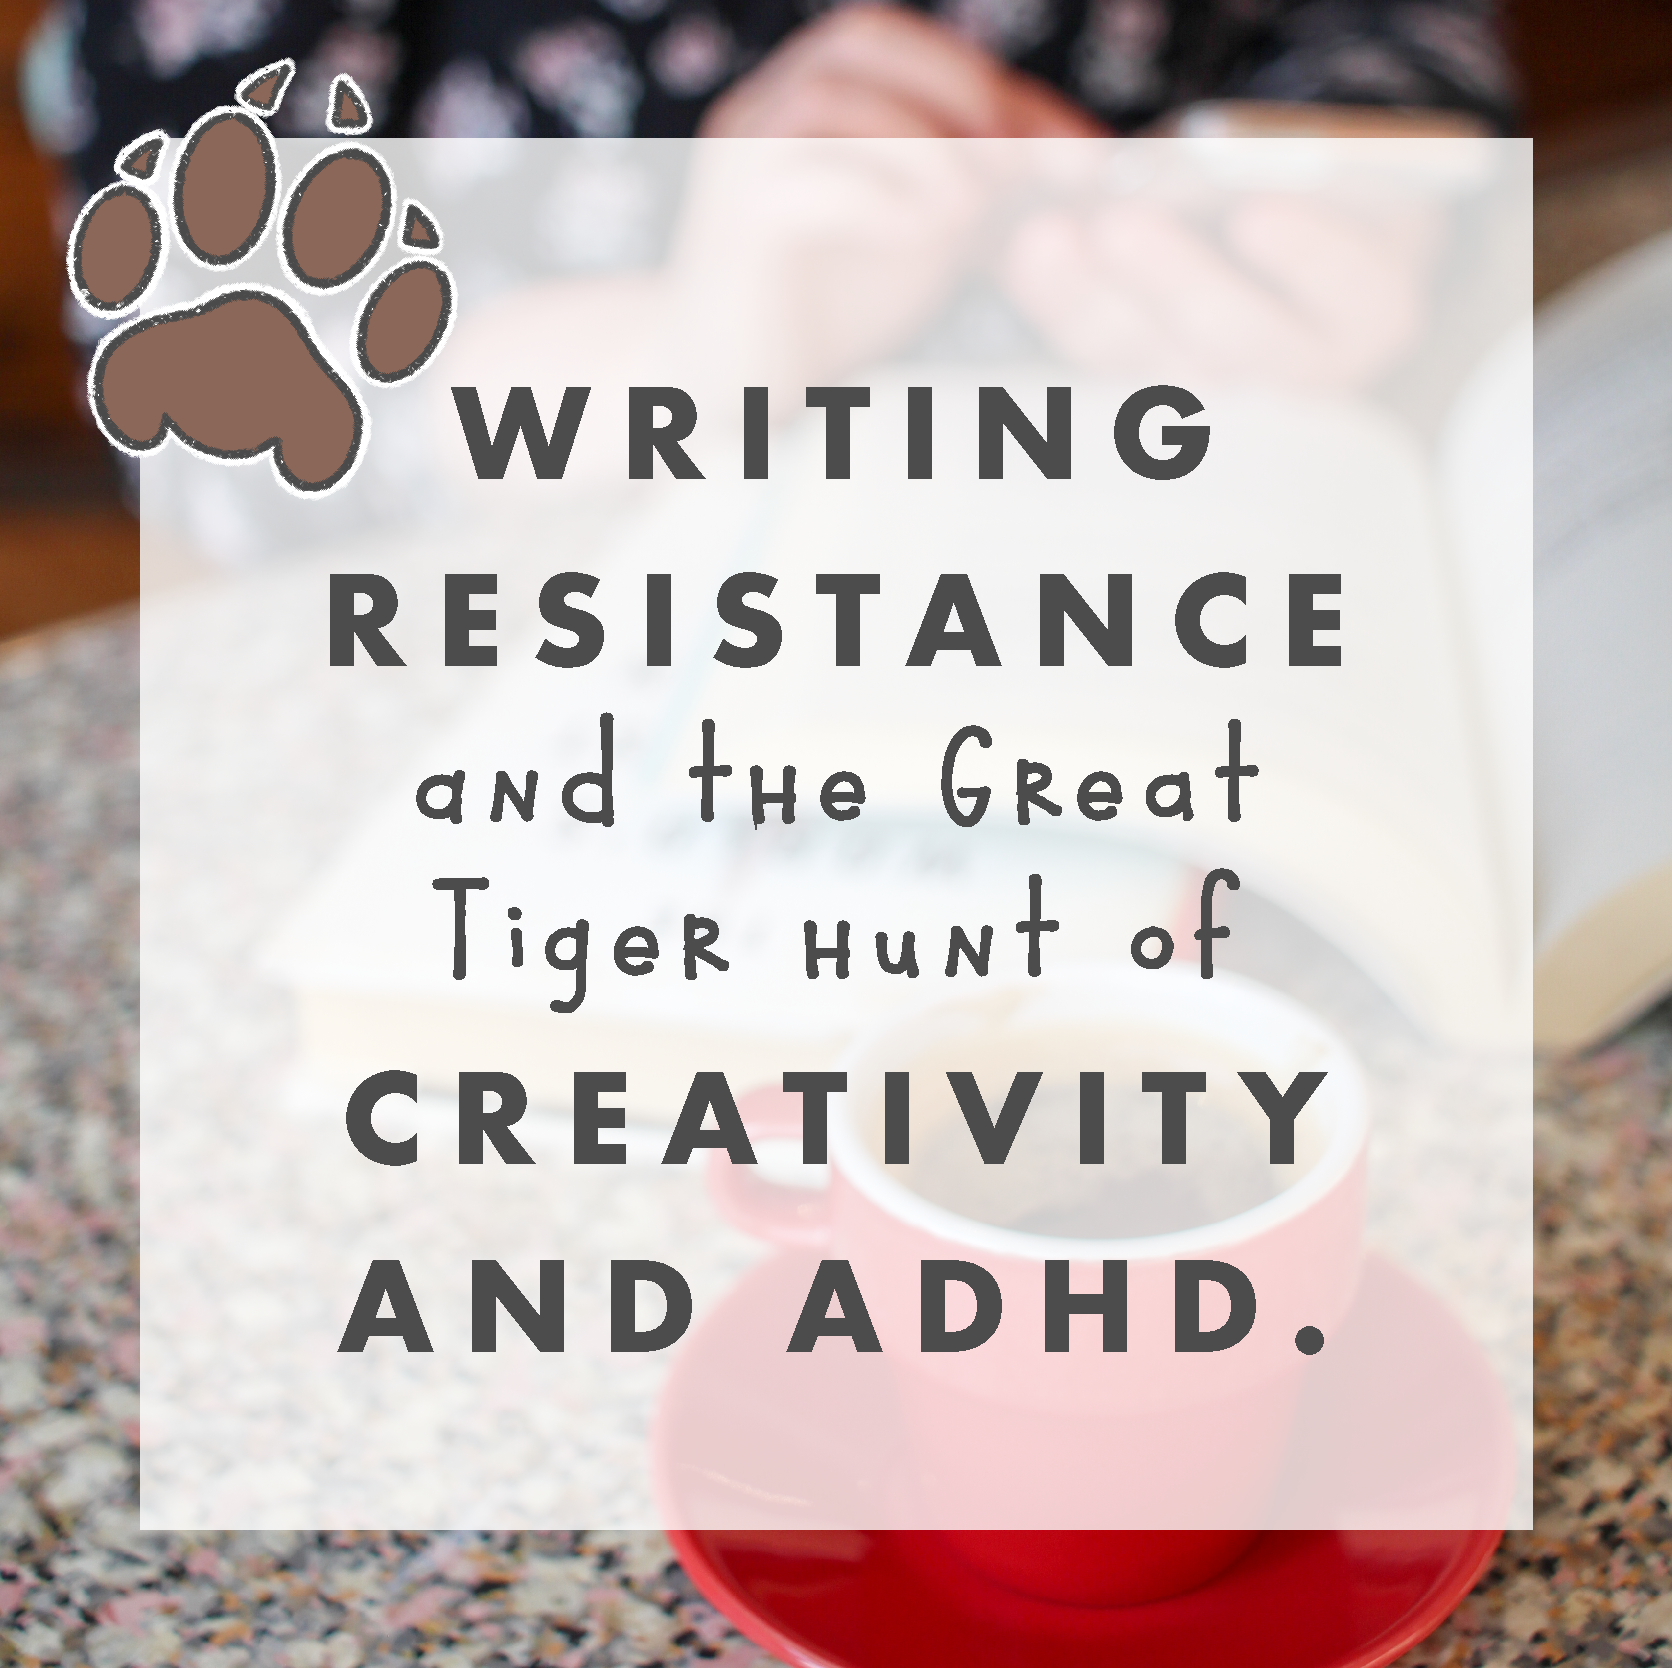 Writing Resistance and the great tiger hunt of Creativity and ADHD